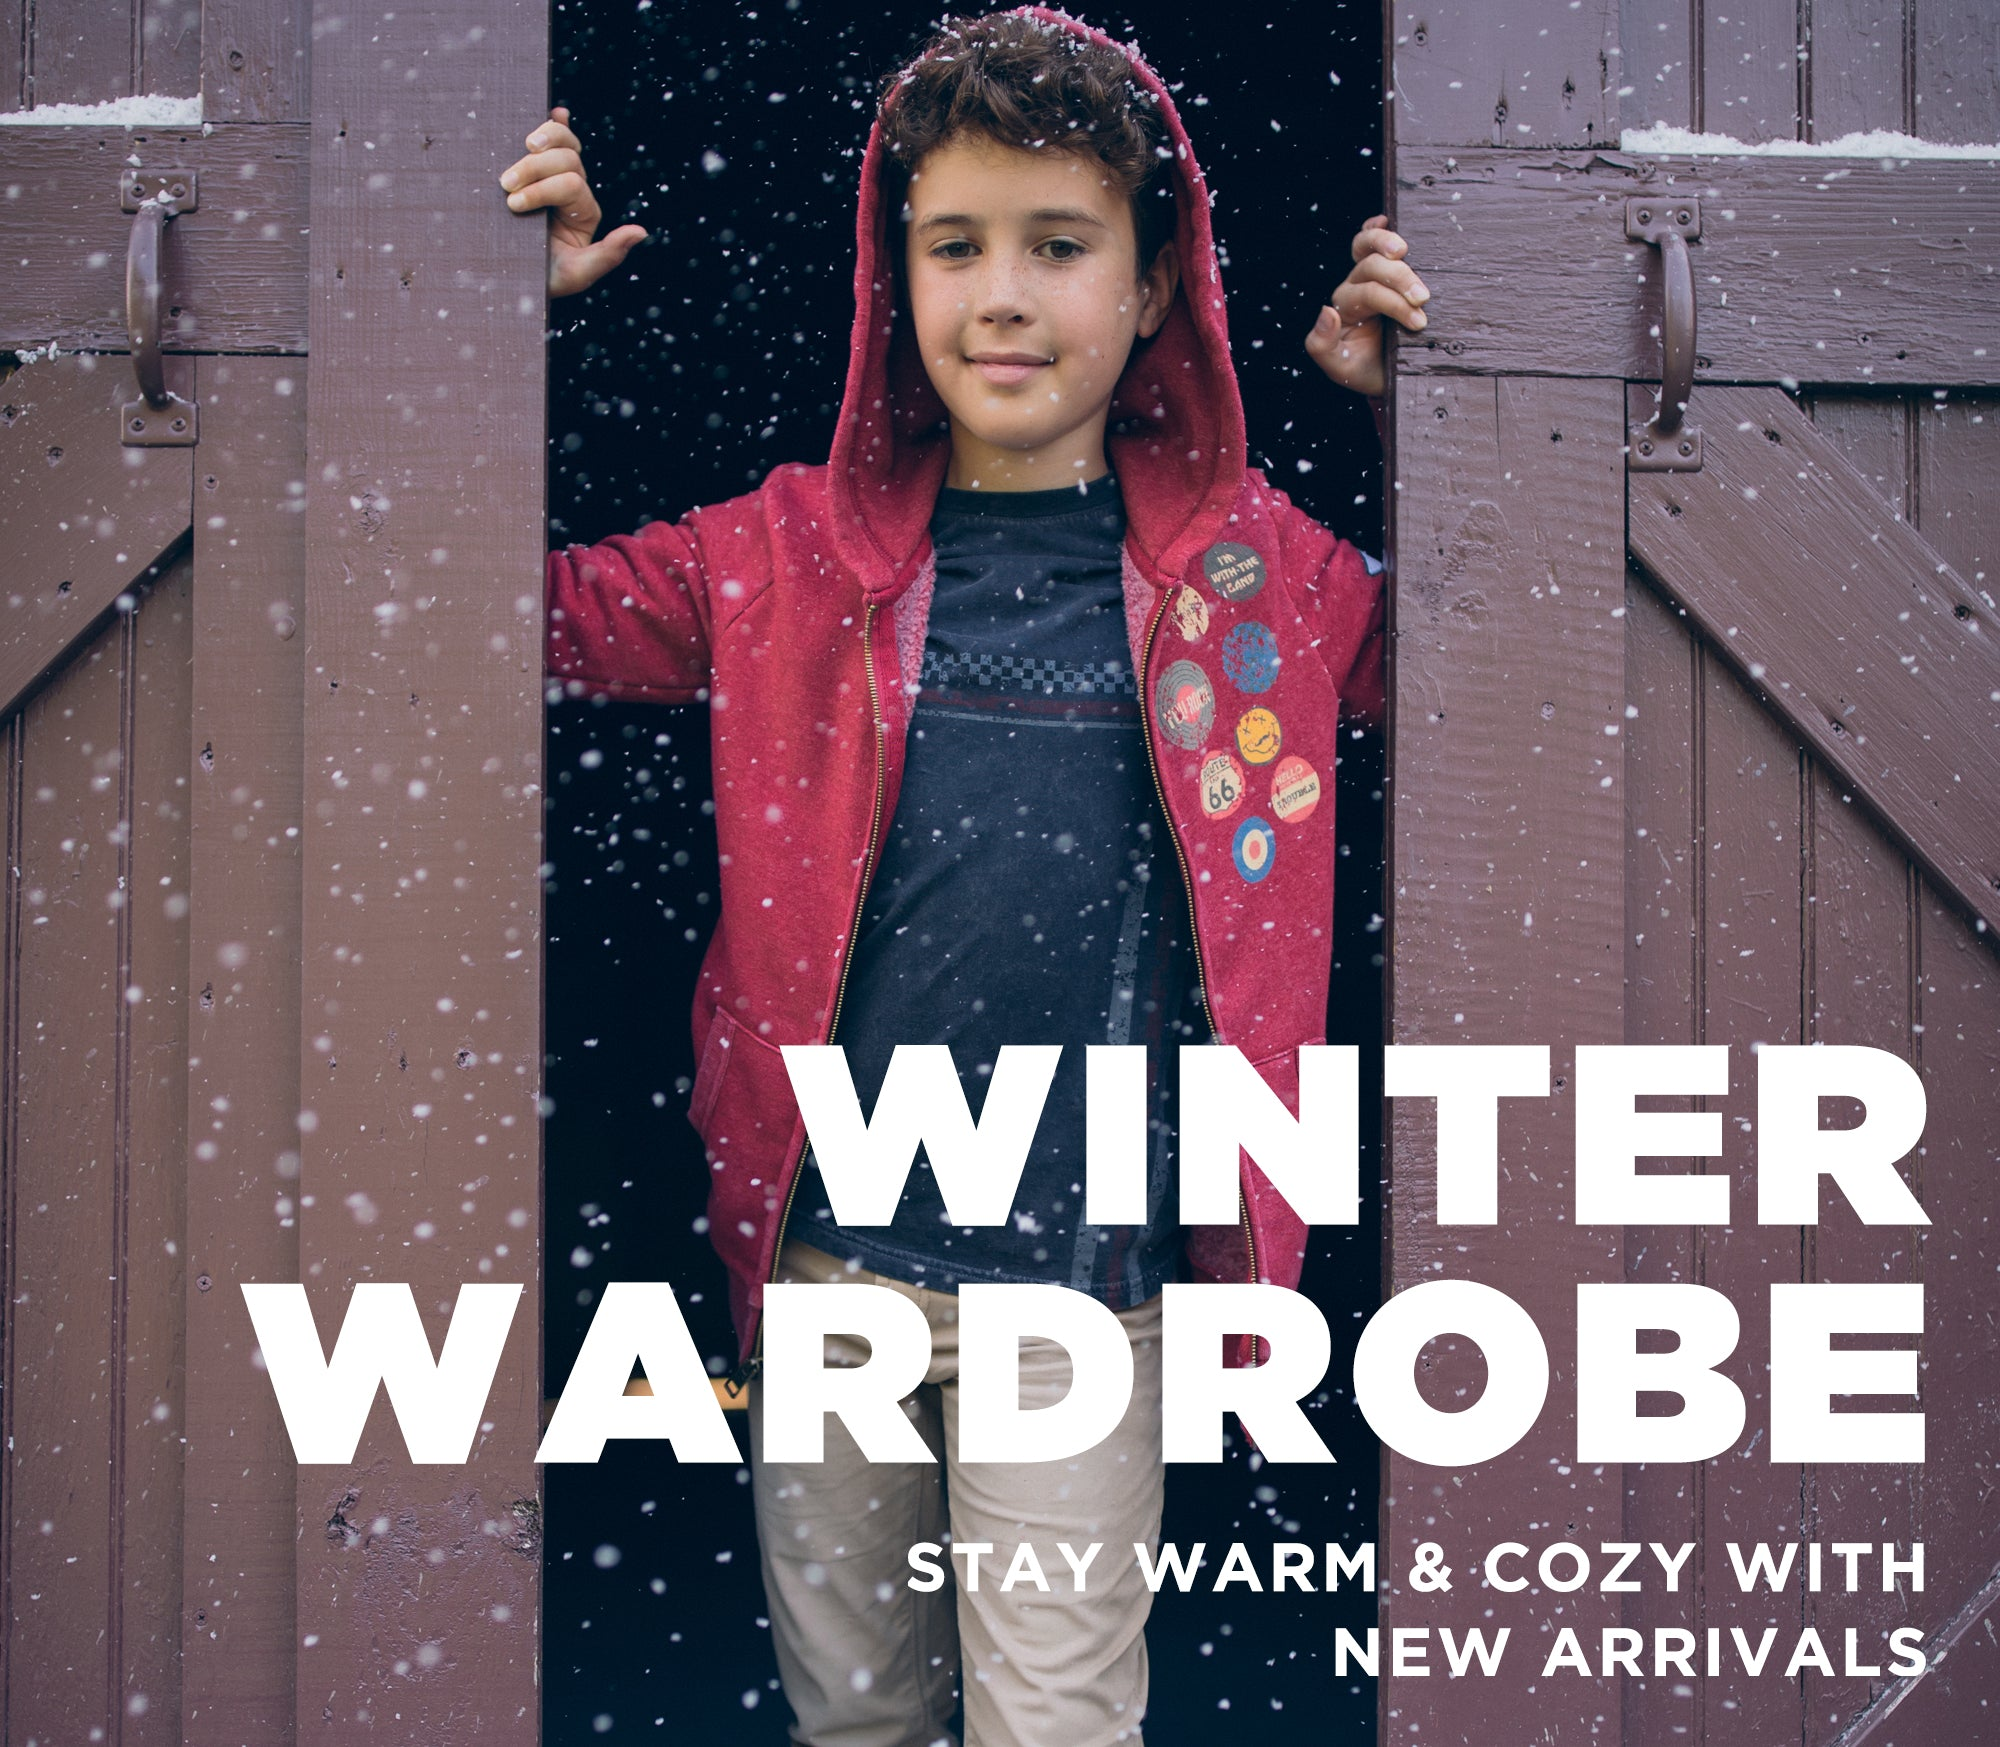 Winter wardrobe. Stay warm & cozy with new arrivals.